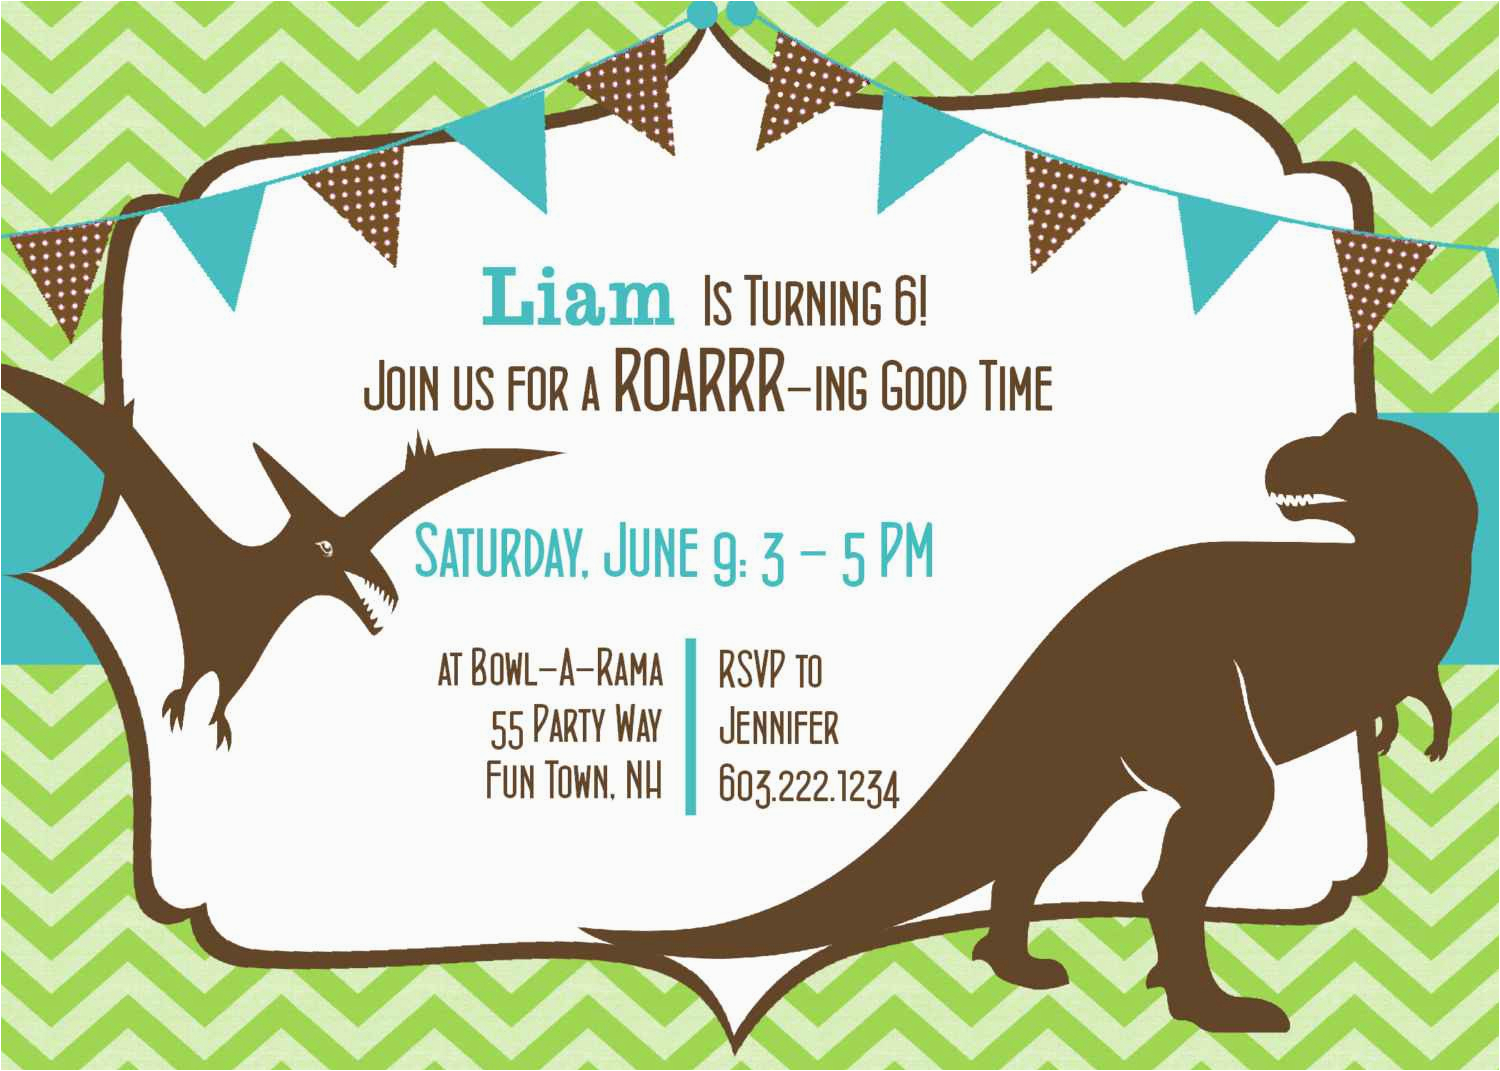 photo about Dinosaur Party Invitations Free Printable titled Absolutely free Printable Dinosaur Birthday Invites Dinosaurs